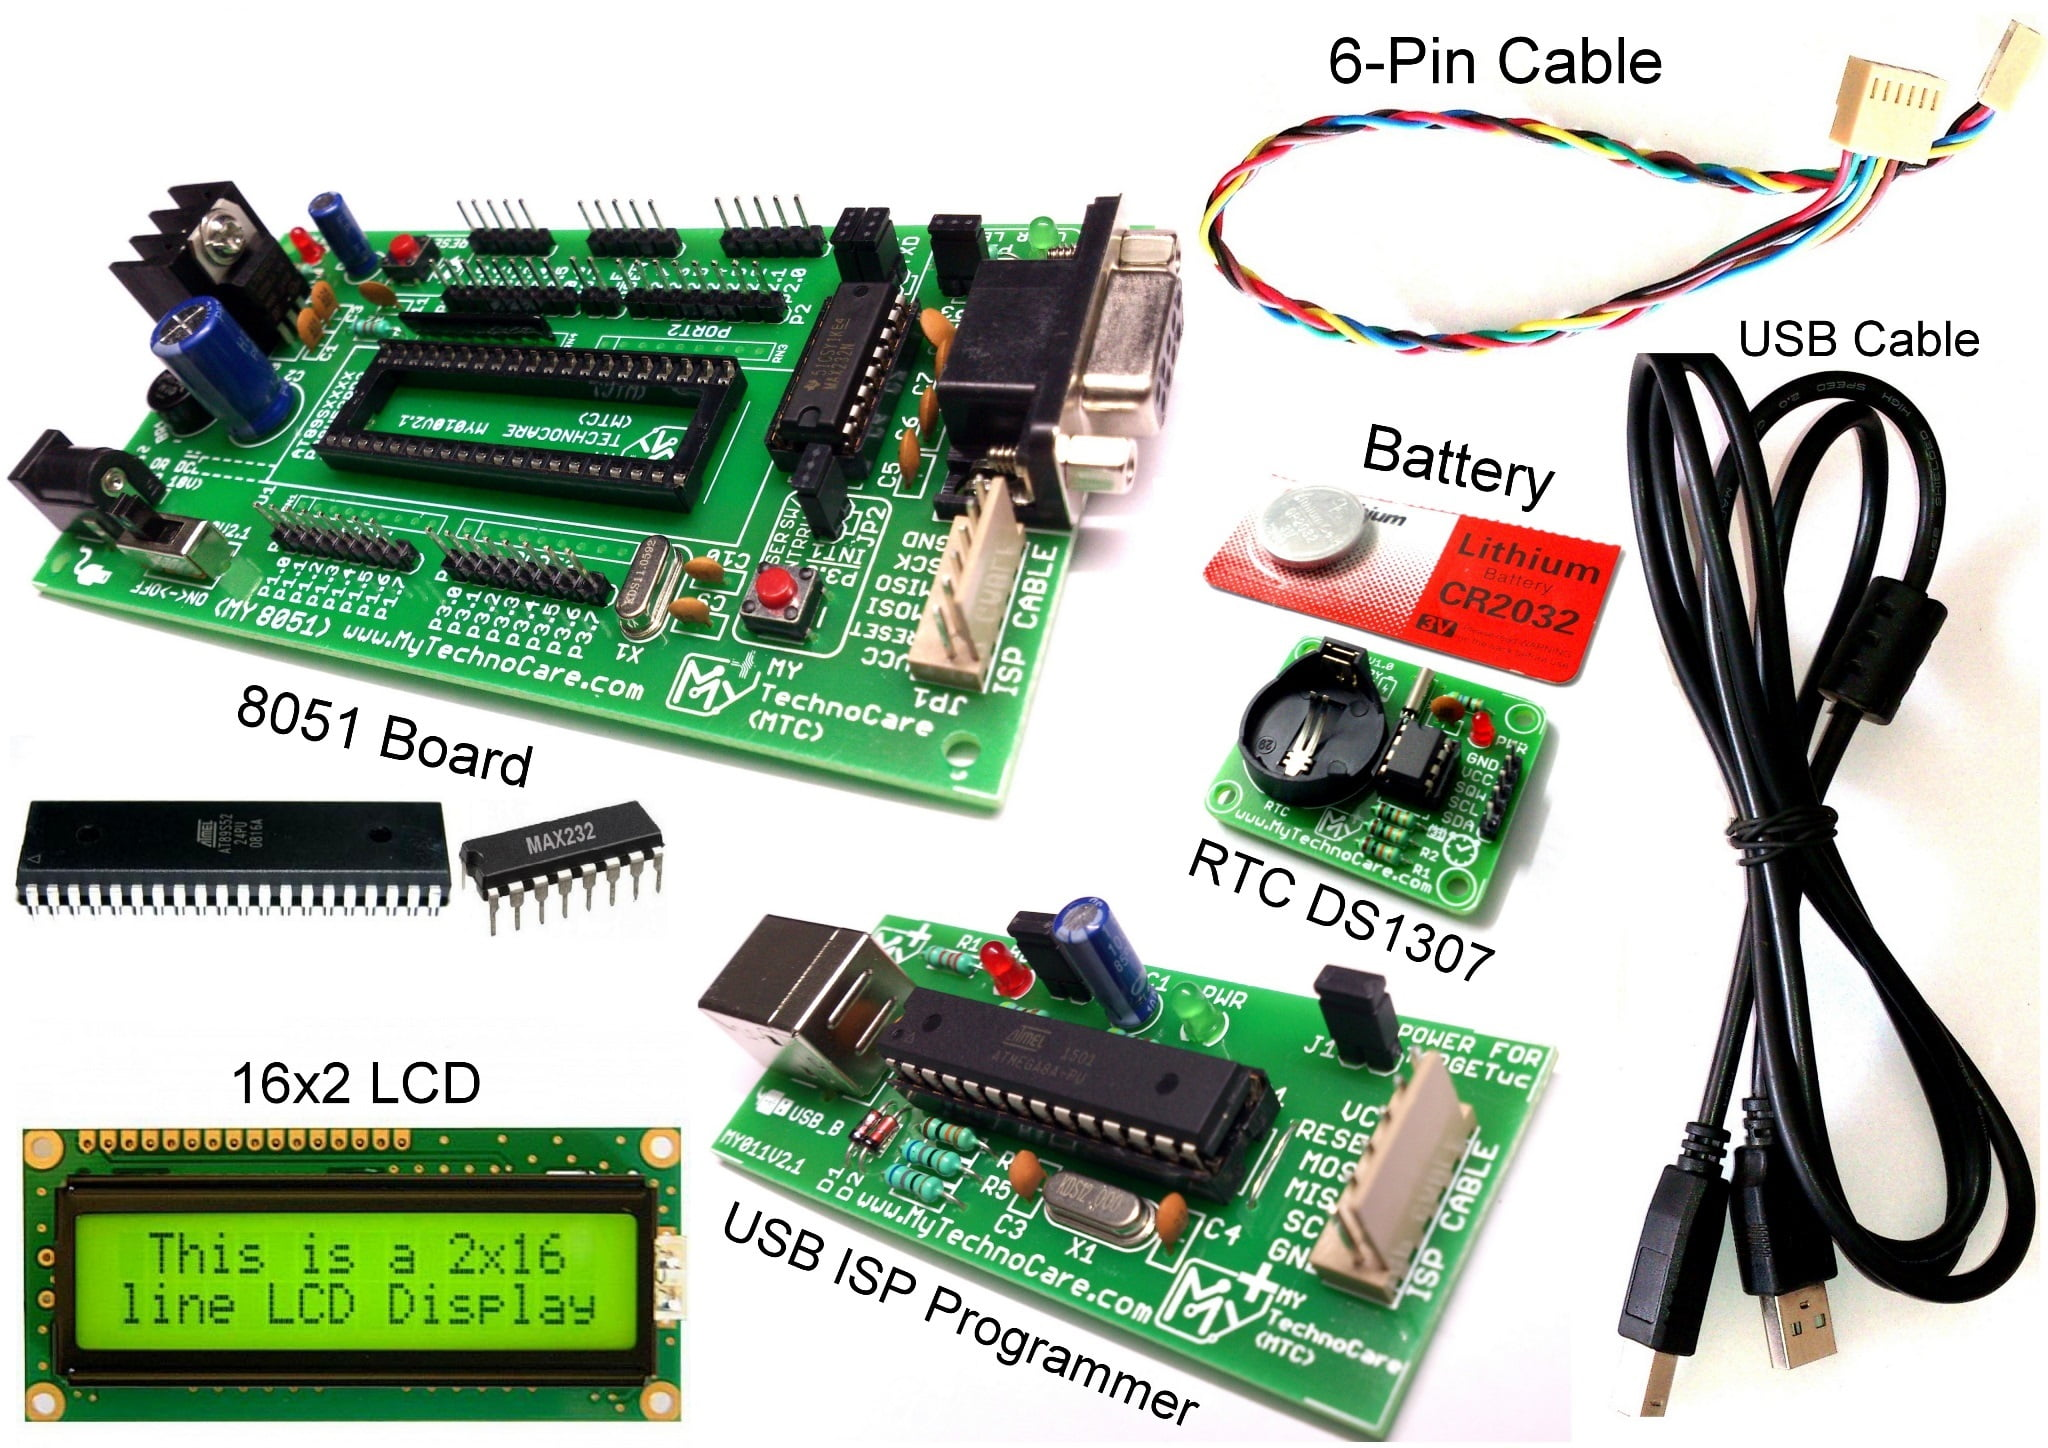 ds1307 with 8051 development board buy rtc module my technocarertc ds1307 with 8051 development board buy with programmer,16×2 lcd display jhd162a